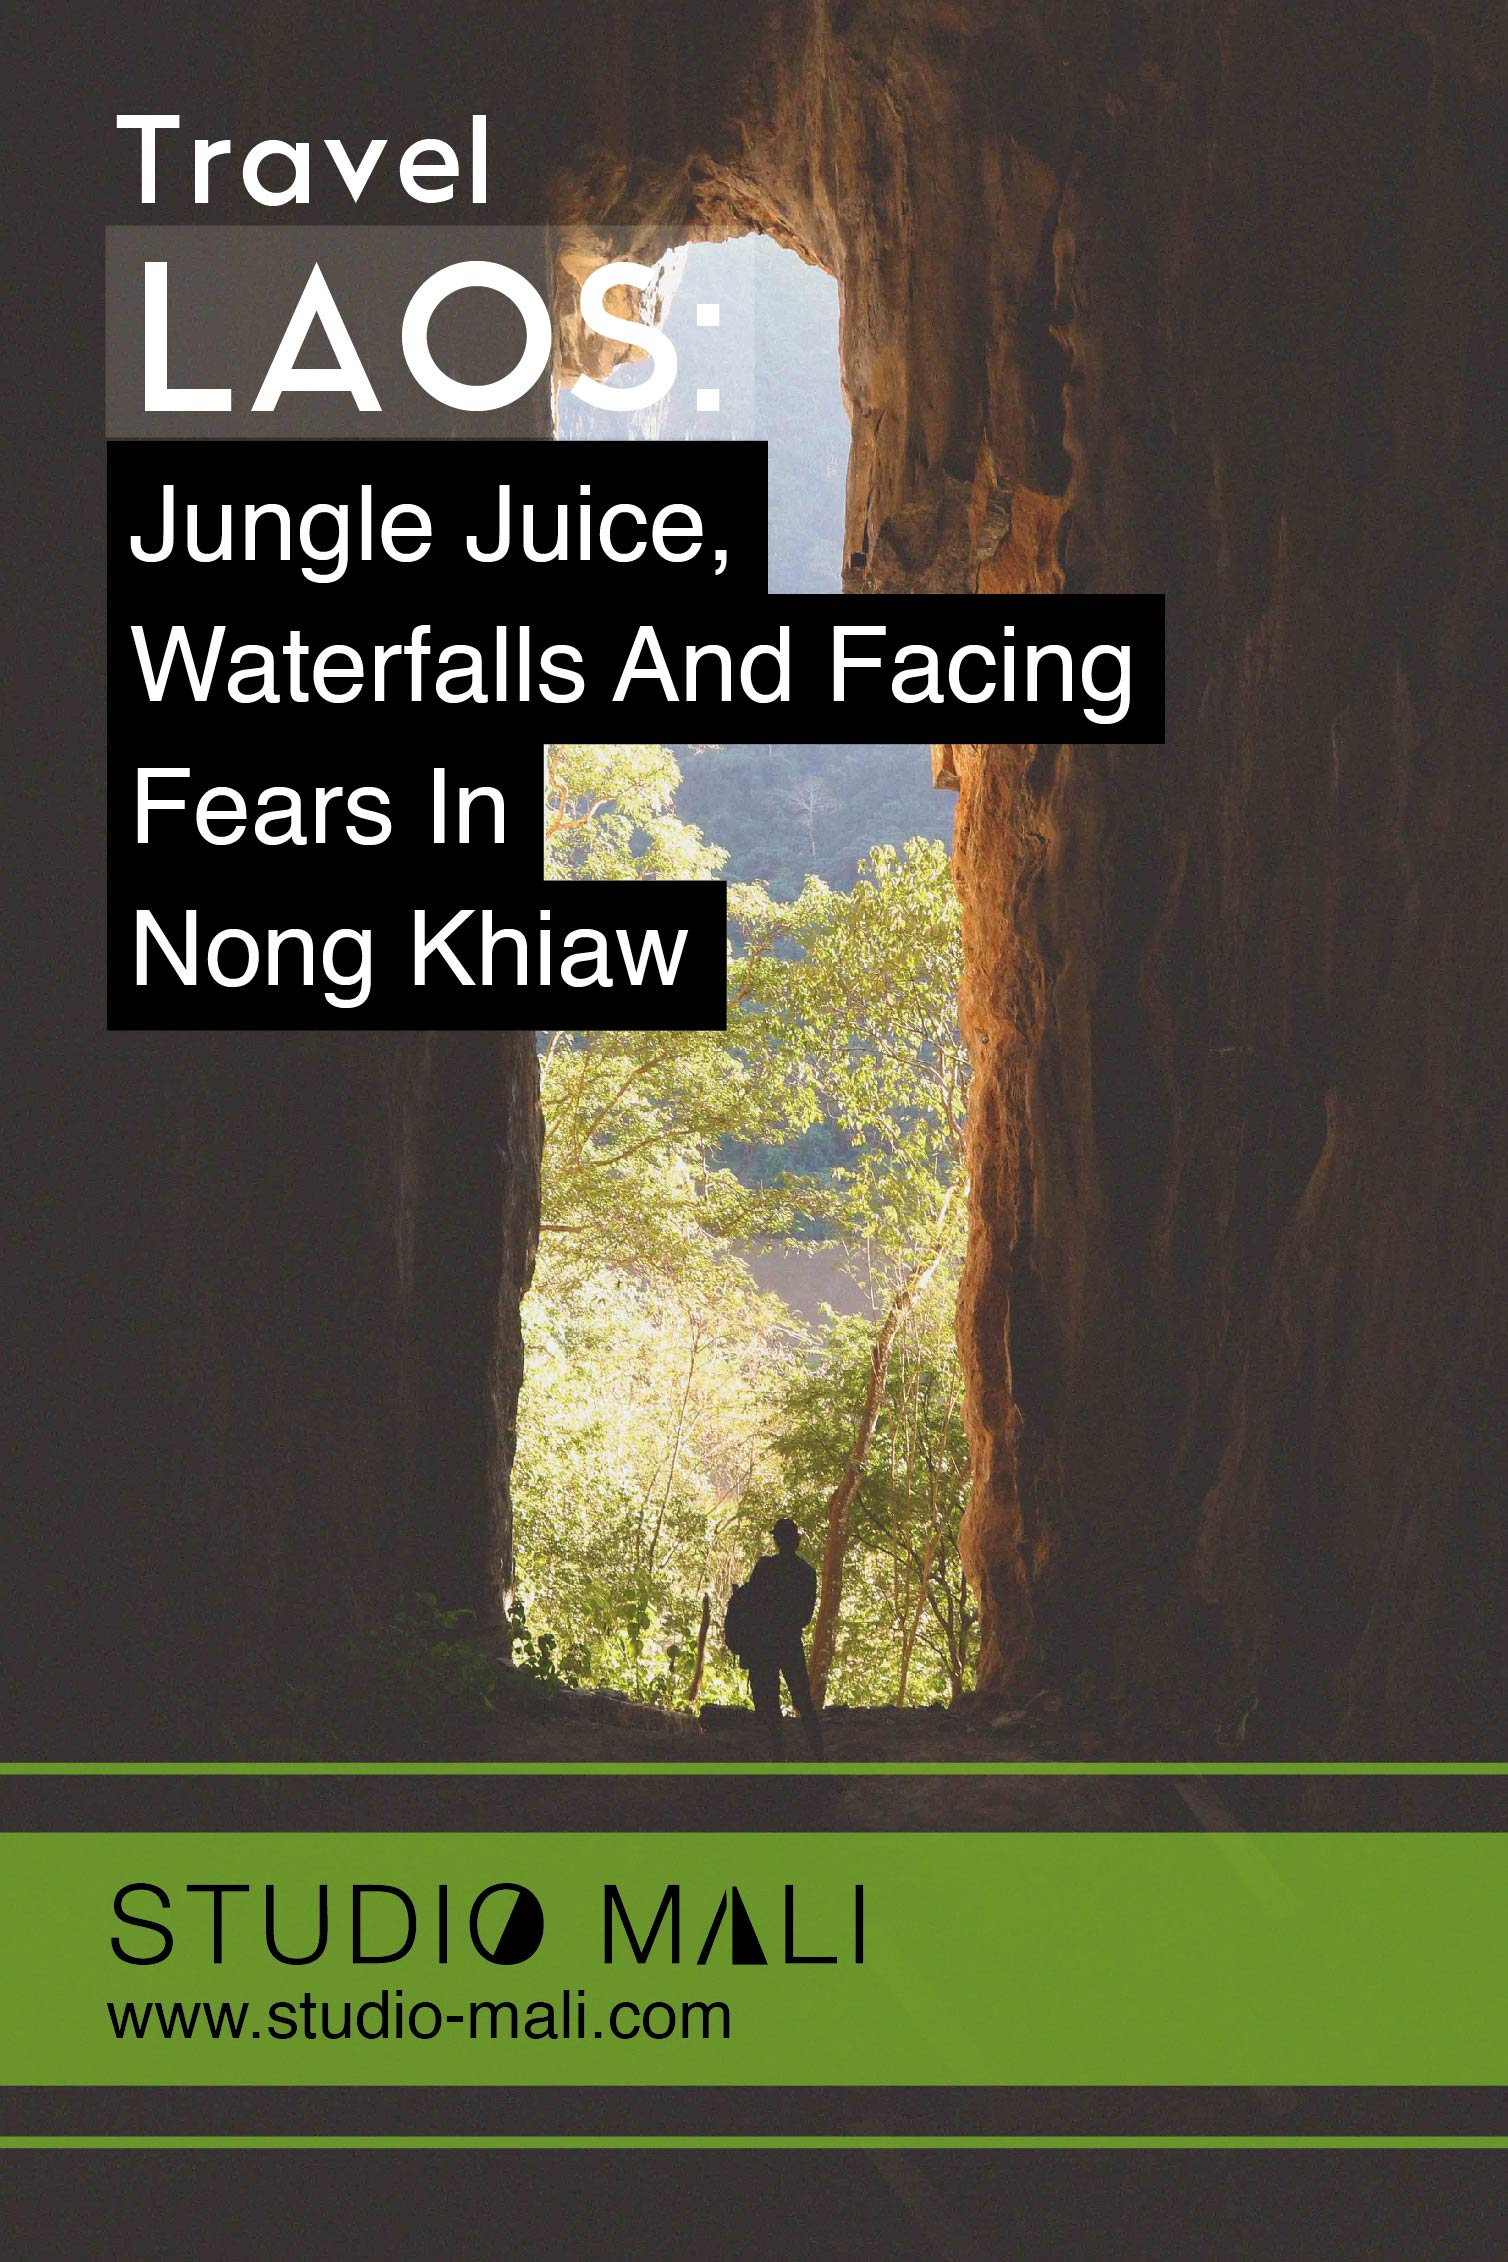 Laos - Jungle Juice, Waterfalls And Facing Fears In Nong Khiaw, By Studio Mali